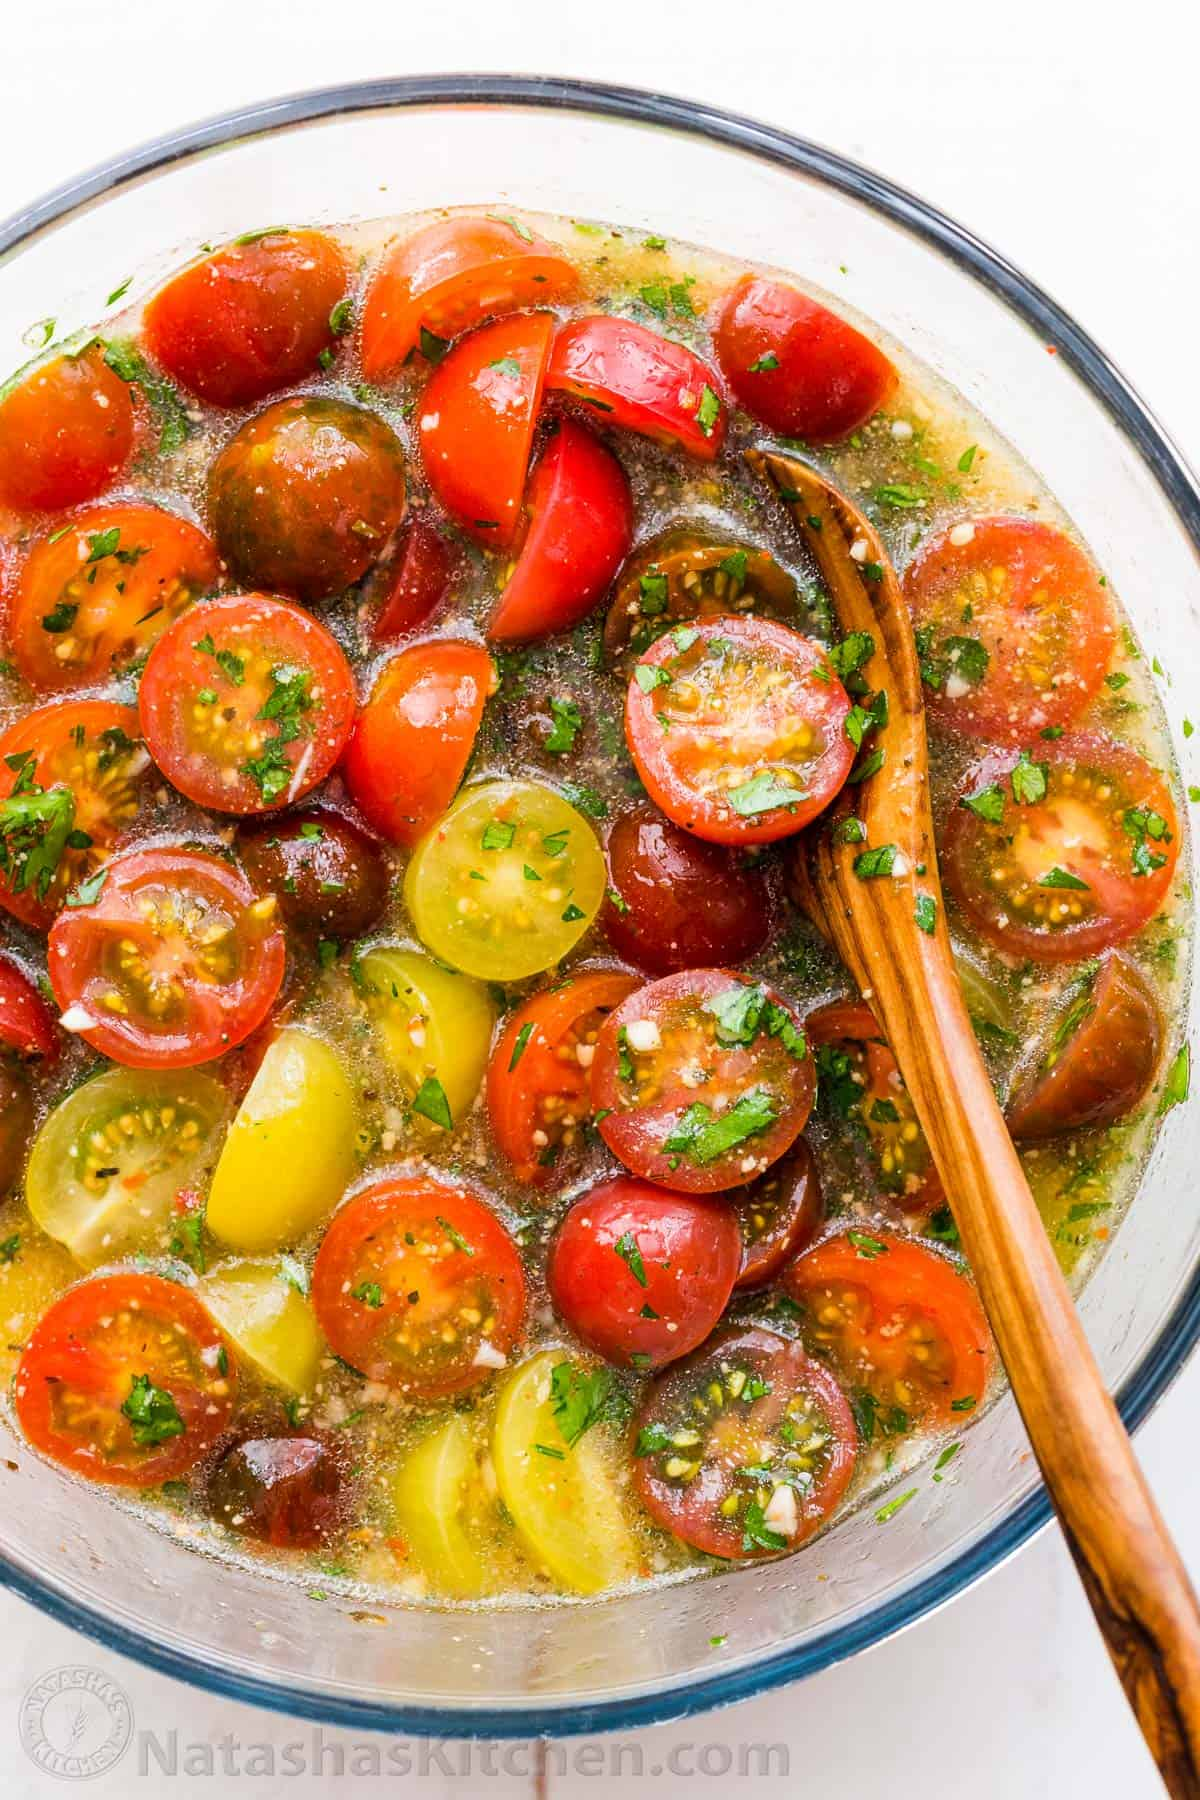 Marinated Cherry Tomatoes Recipe Natashaskitchen Com